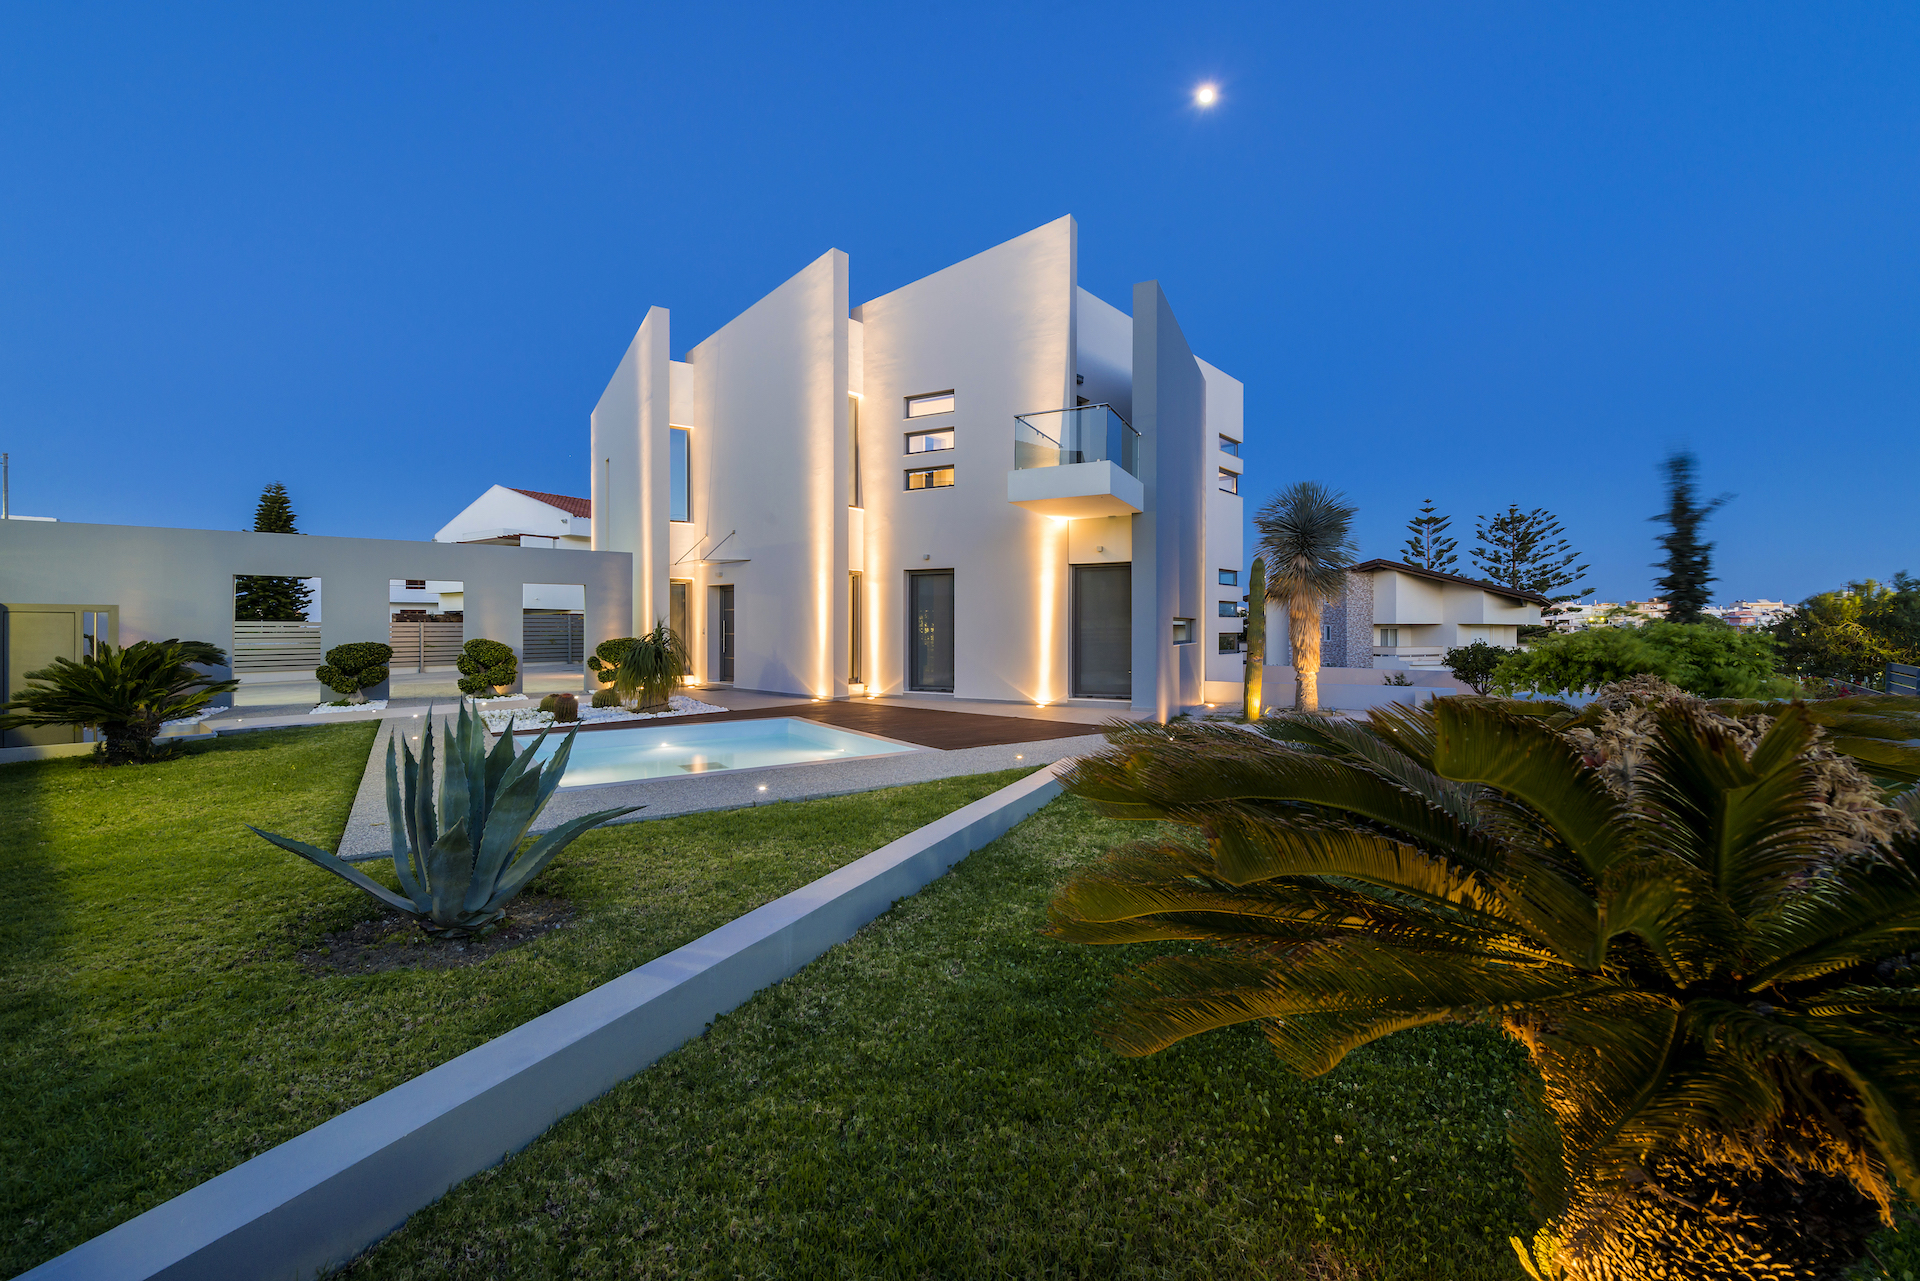 Single Family Home for Sale at Exclusive Residence Rhodes, Southern Aegean, Greece